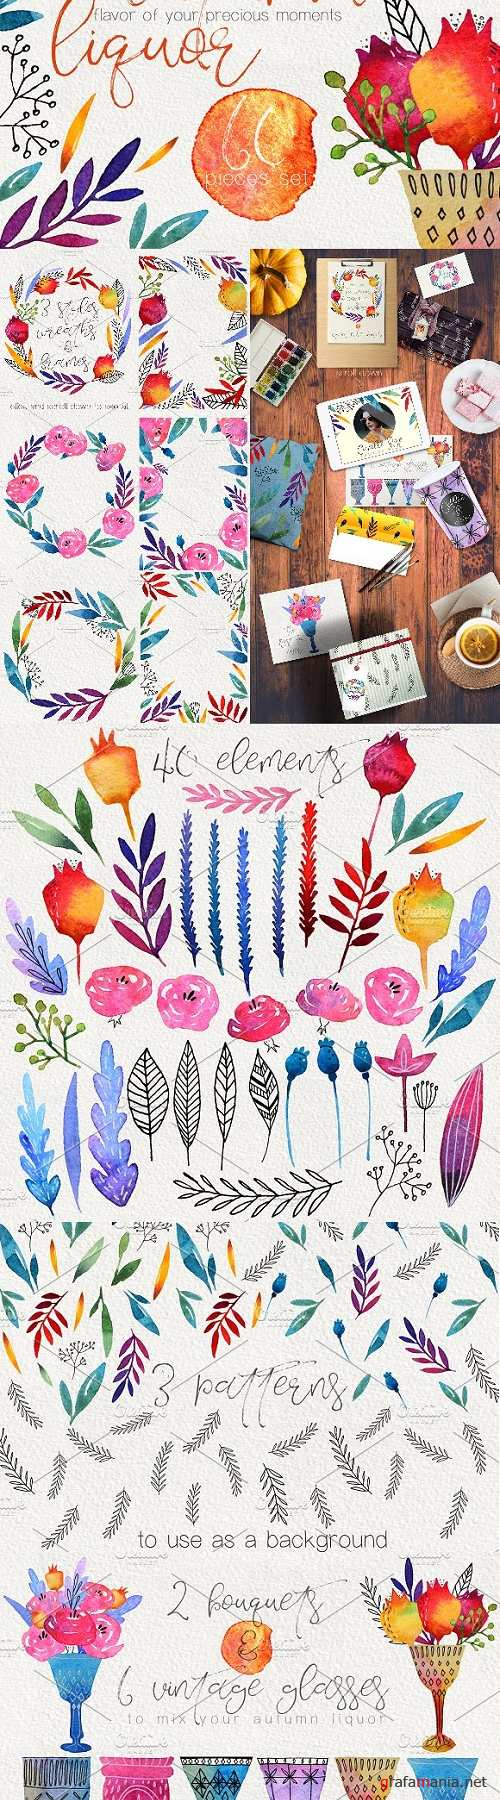 Autumn Liquor. Watercolor Design Set - 1984062